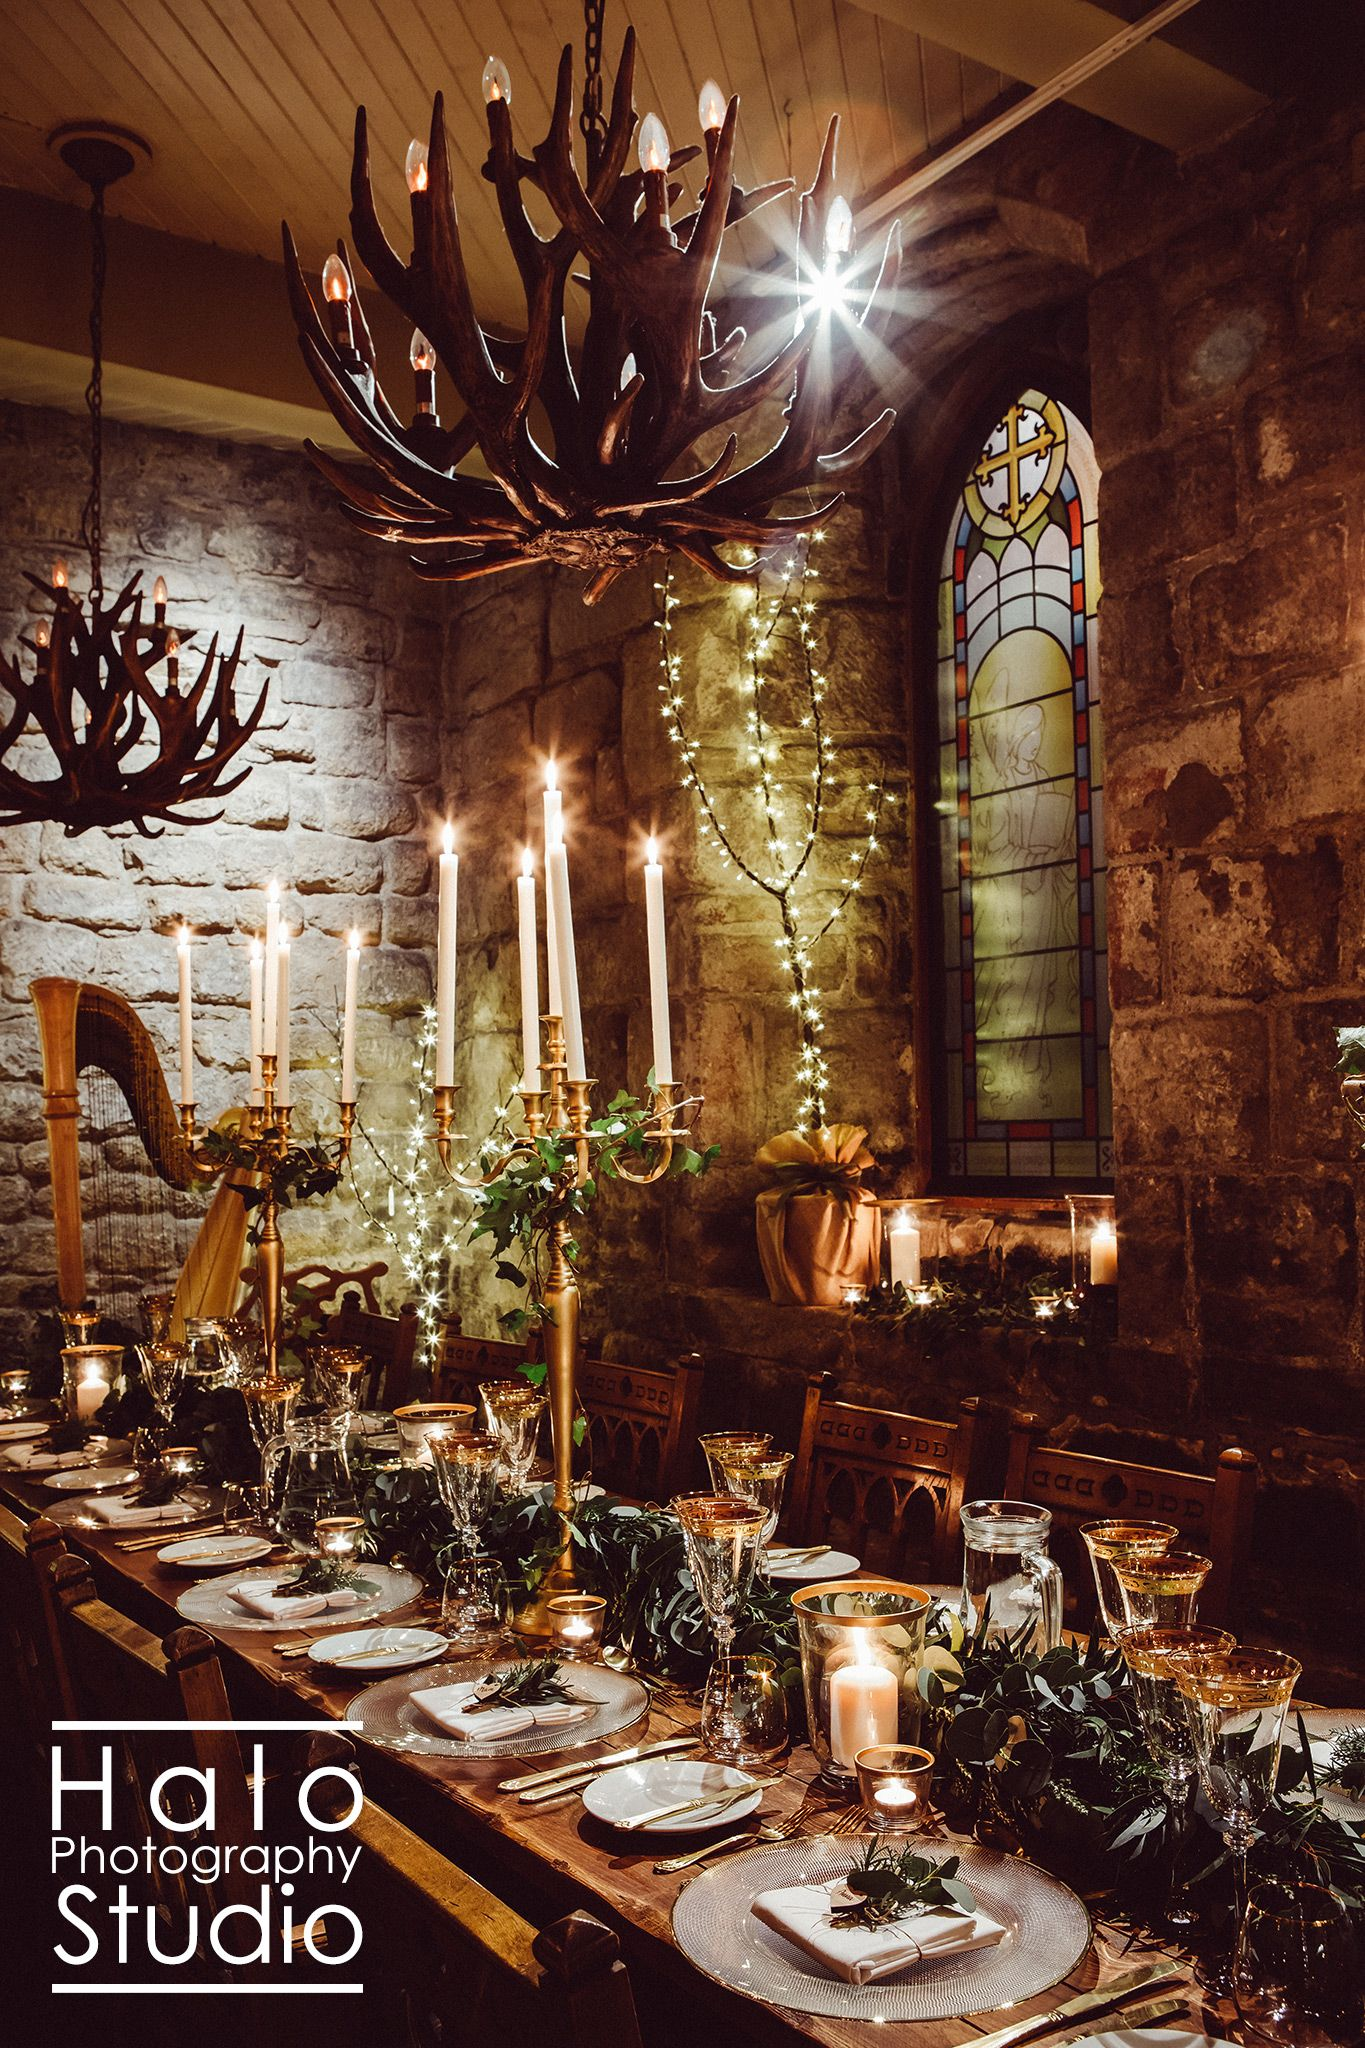 Medieval Wedding Breakfast at Blackfriars Banquet Hall in Newcastle-upon-Tyne with table settings from Northumbrian Flowers